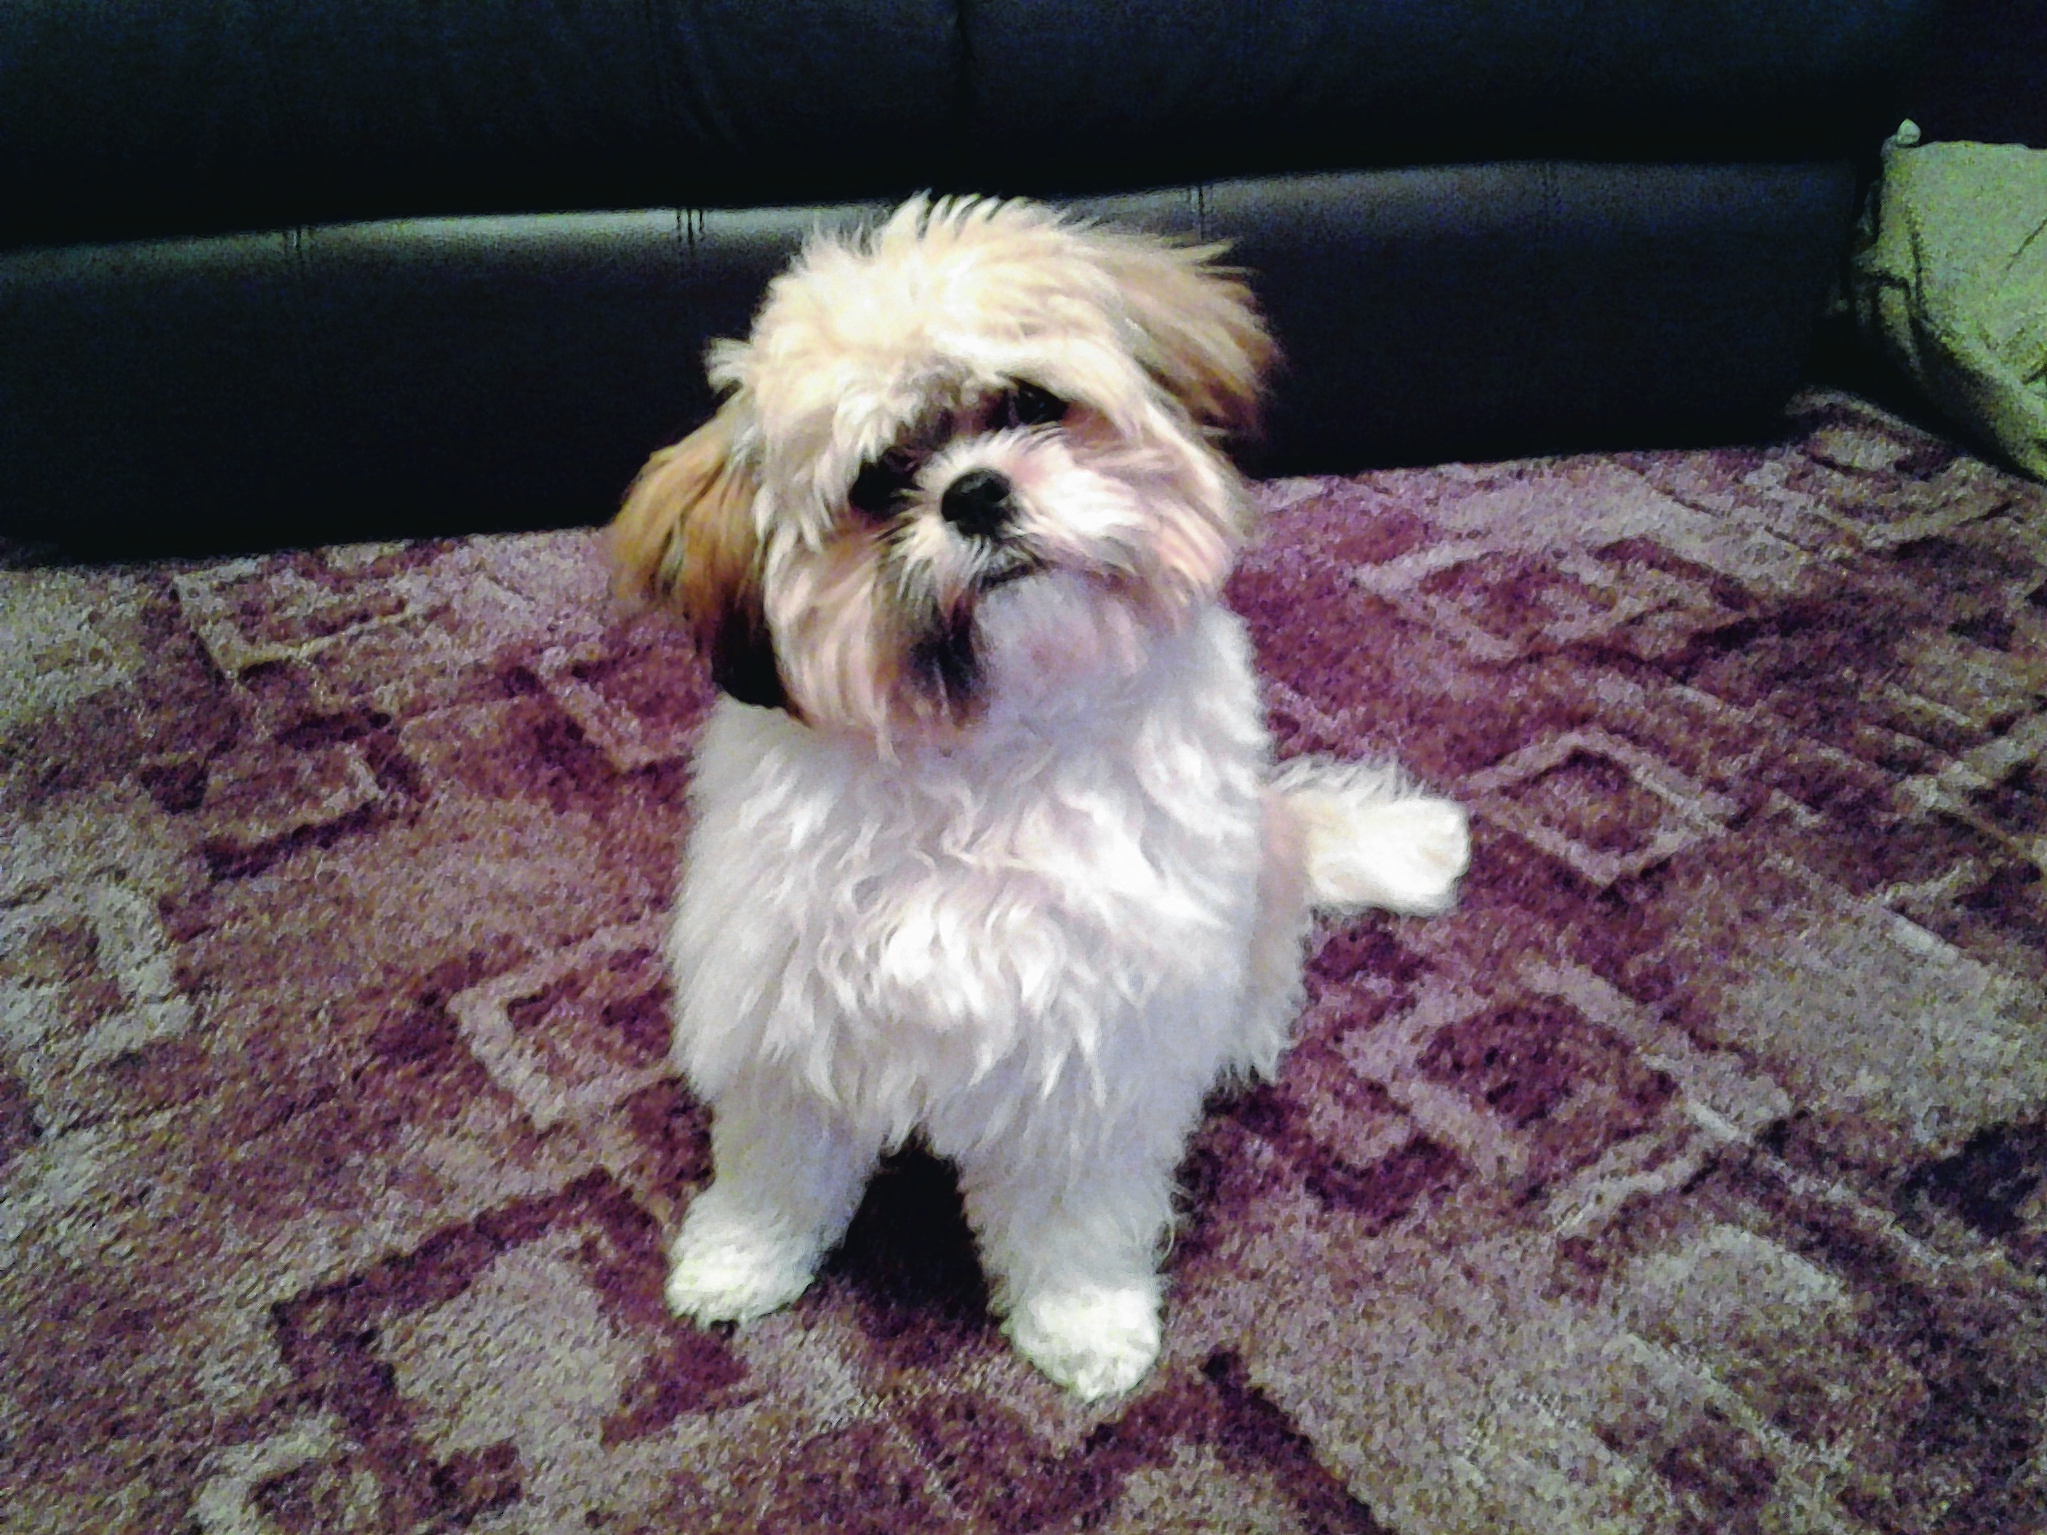 Rosie is a 6-month-old Lhasa Apso and lives with Pat Maclean in Inverness.